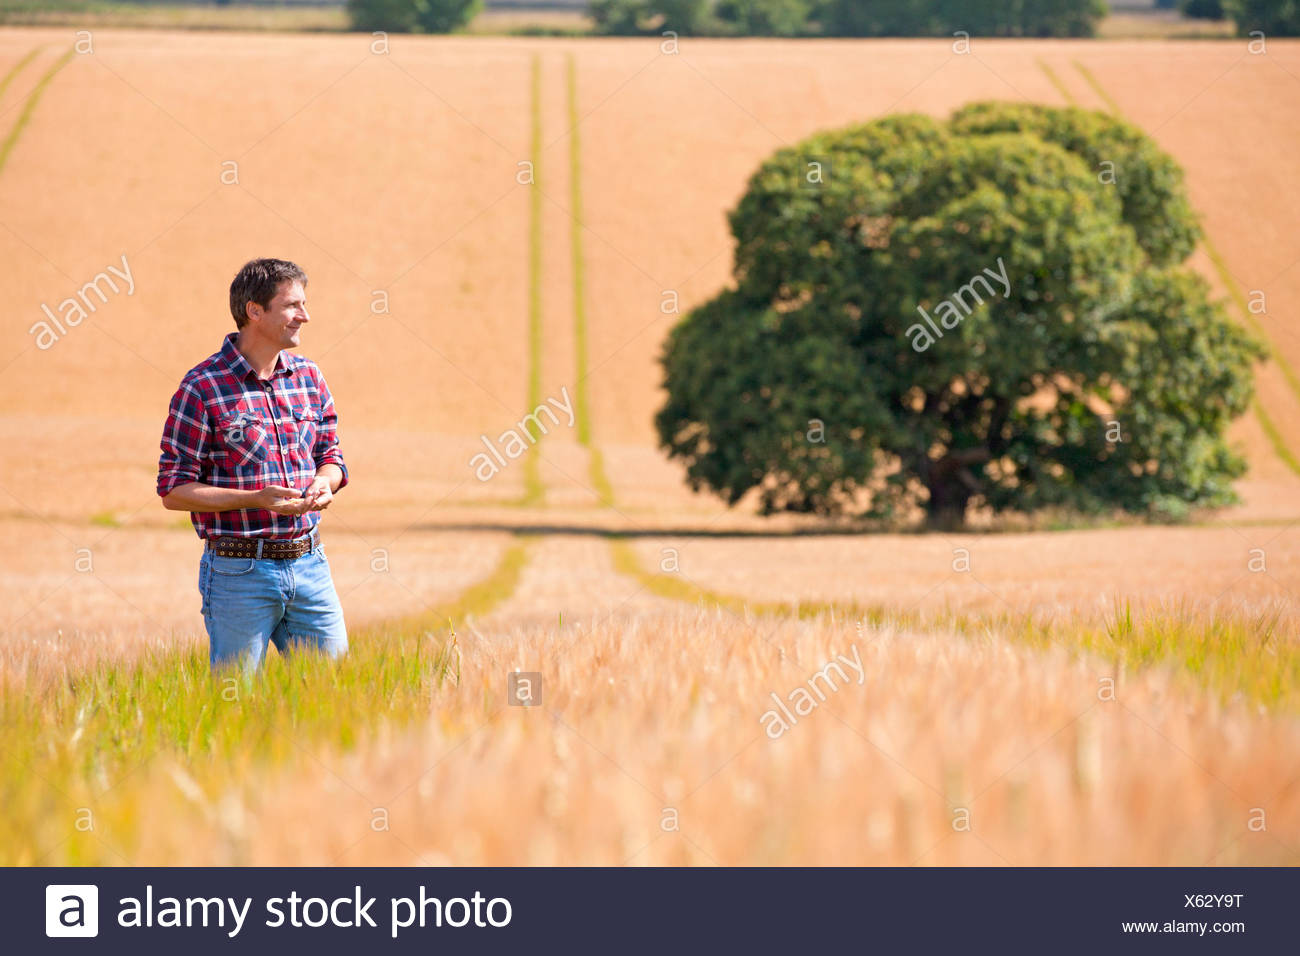 Farmer standing in sunny rural barley crop field in summer - Stock Image